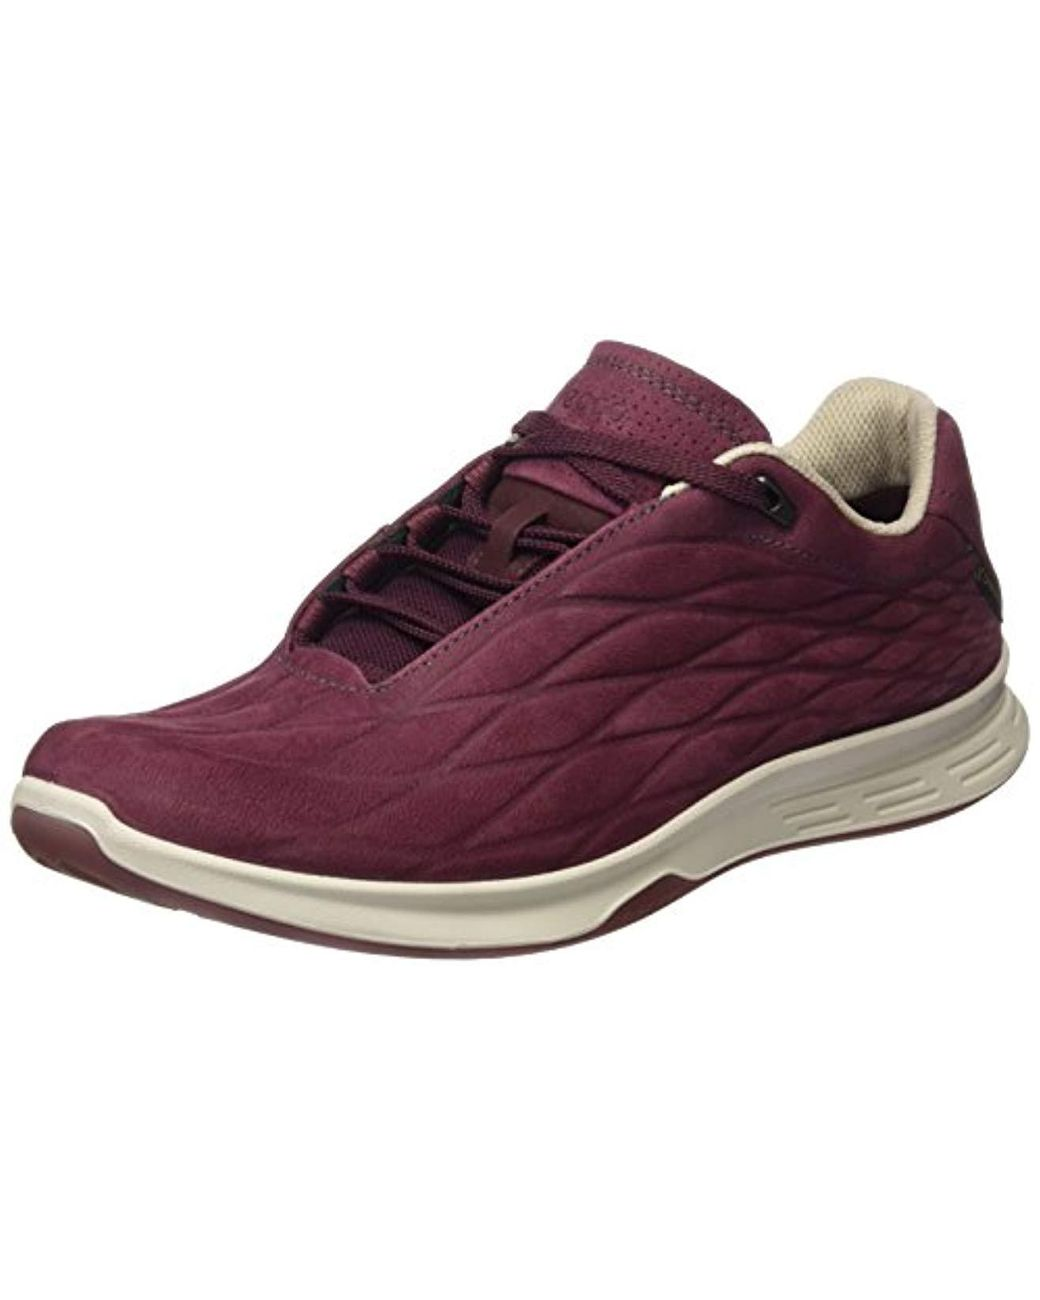 Ecco Exceed Multisport Outdoor Shoes in Red Lyst